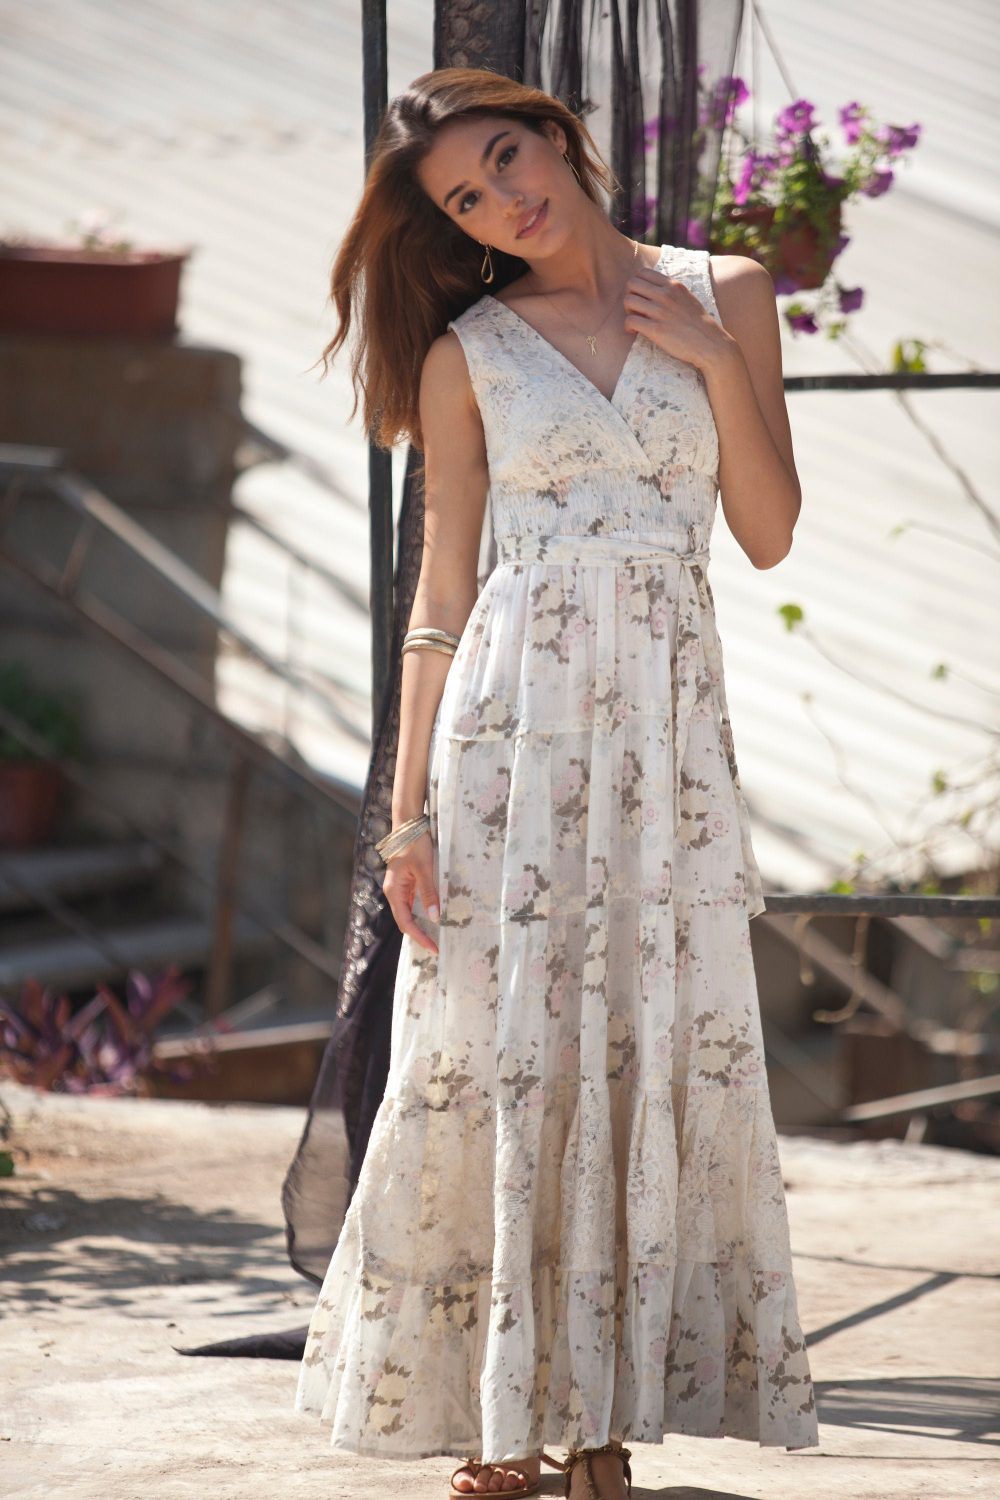 Cream Floral Maxi Sun Dress, Romantic Casual To Special Occasion Summer Bohemian Cotton & Lace Long Flower Carrie Dress